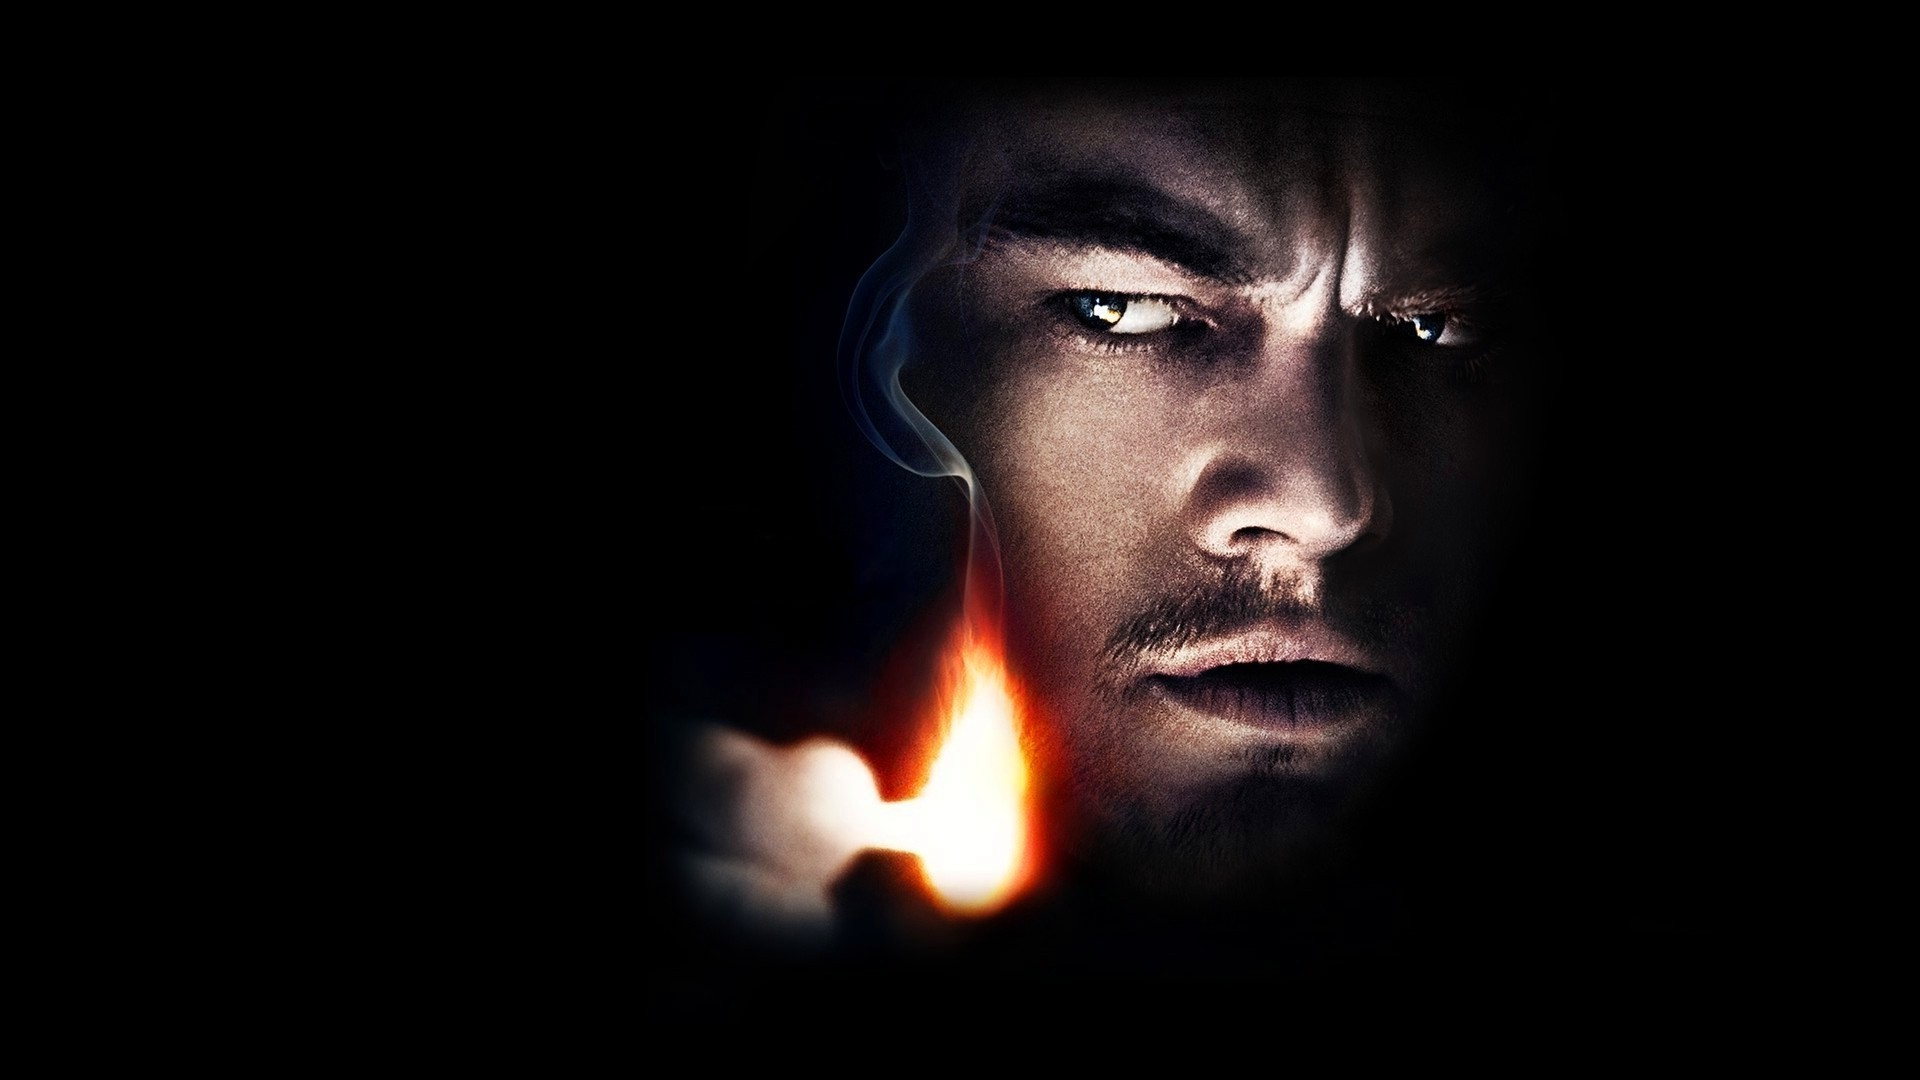 1920x1080 Shutter Island, Leonardo DiCaprio, Matches, Fire, Movies Wallpapers HD /  Desktop and Mobile Backgrounds